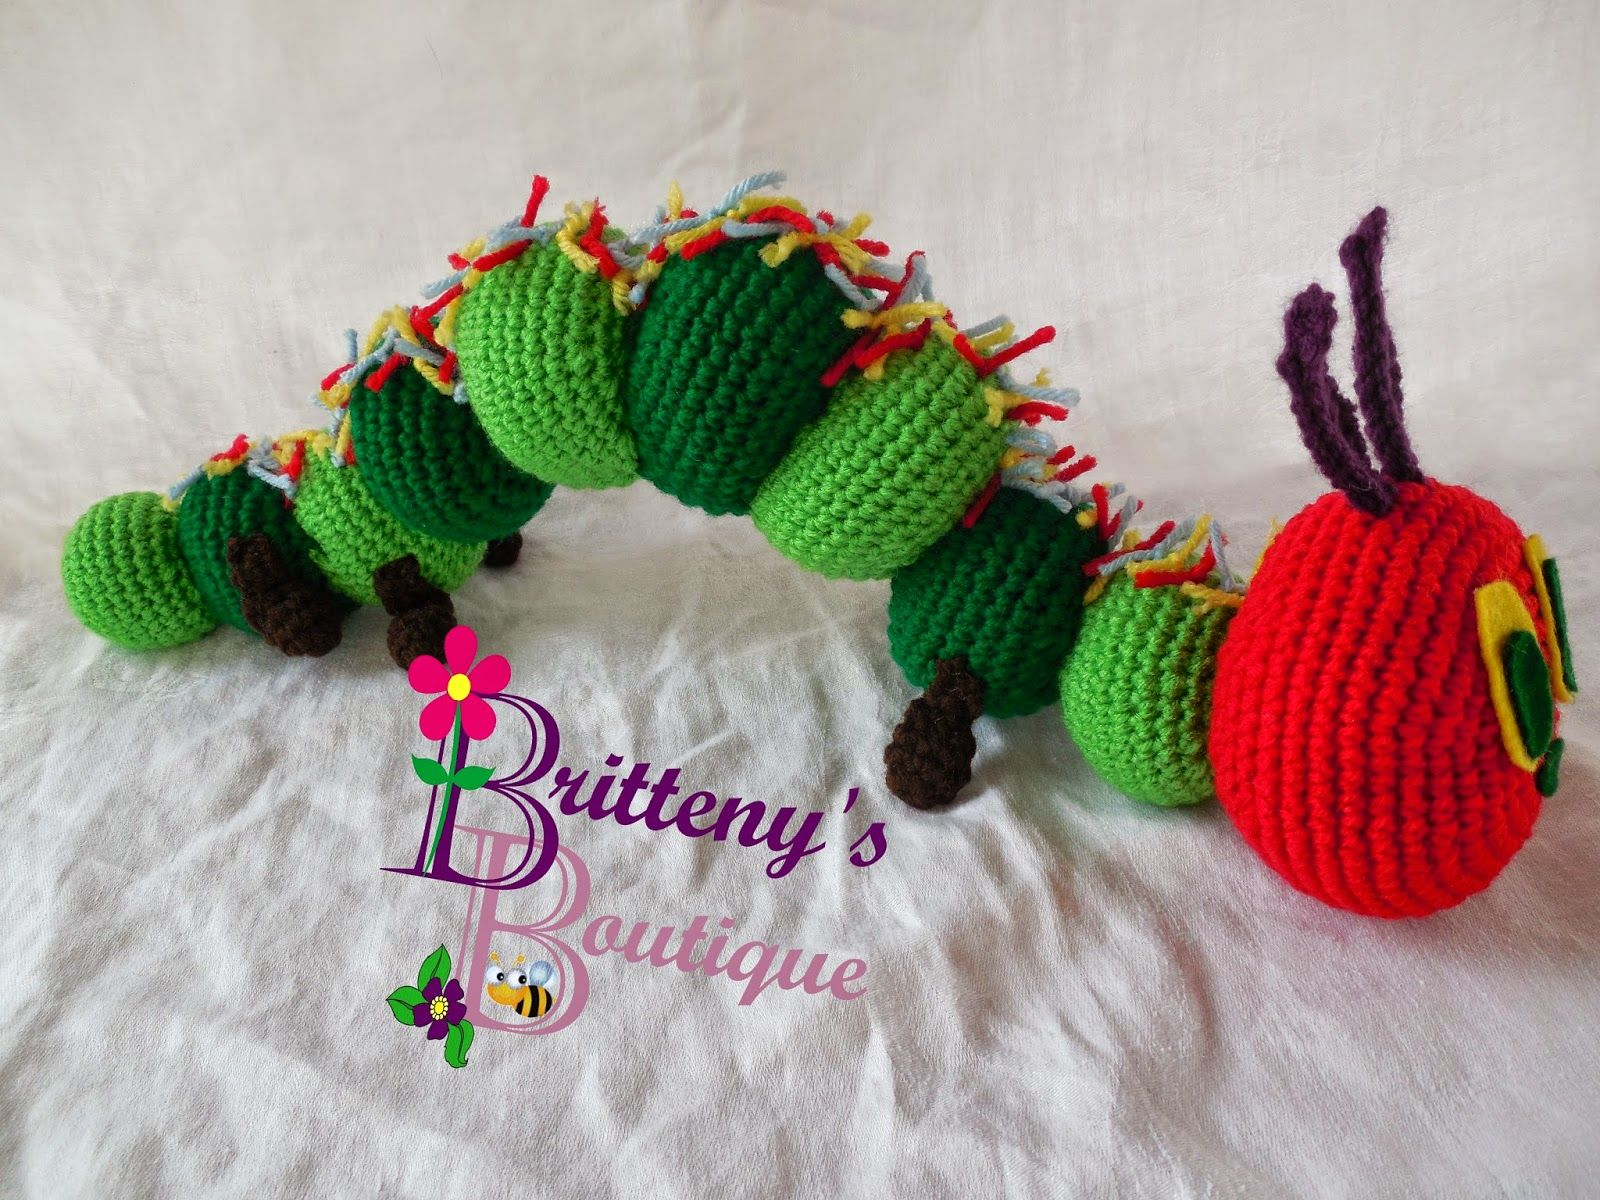 Amigurumi Patterns Free Crochet Pdf : Britteny off the hook!!: britteny's boutique's hungry caterpillar